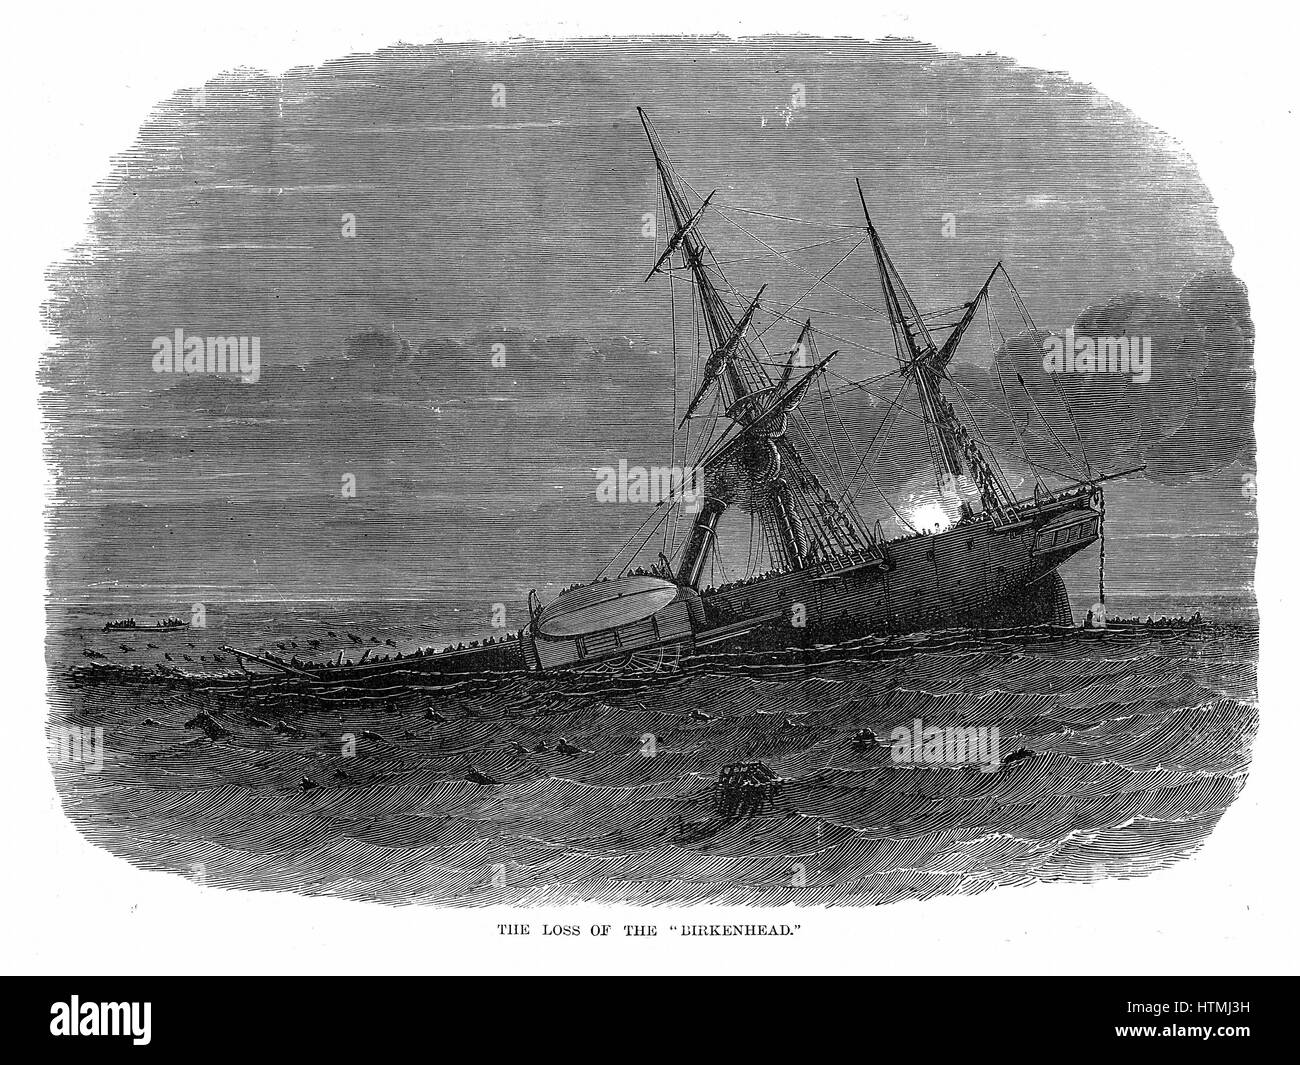 Loss of iron paddle-steamer troop ship 'Birkenhead' off Simon's Bay South Africa 26 February 1852. Commanding officer, Stock Photo